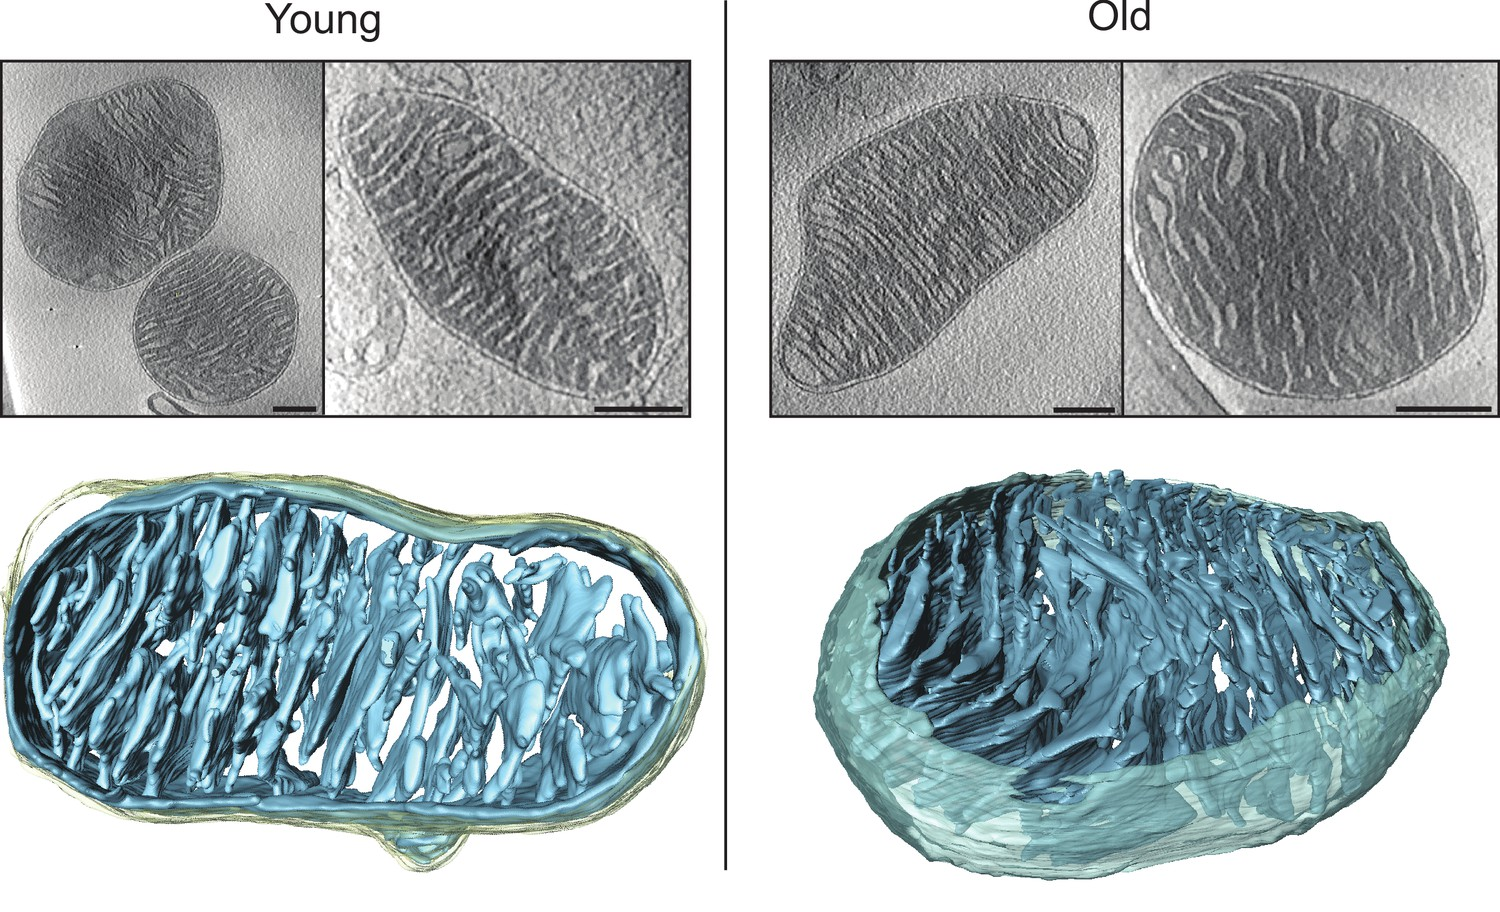 Changes Of Mitochondrial Ultrastructure And Function During